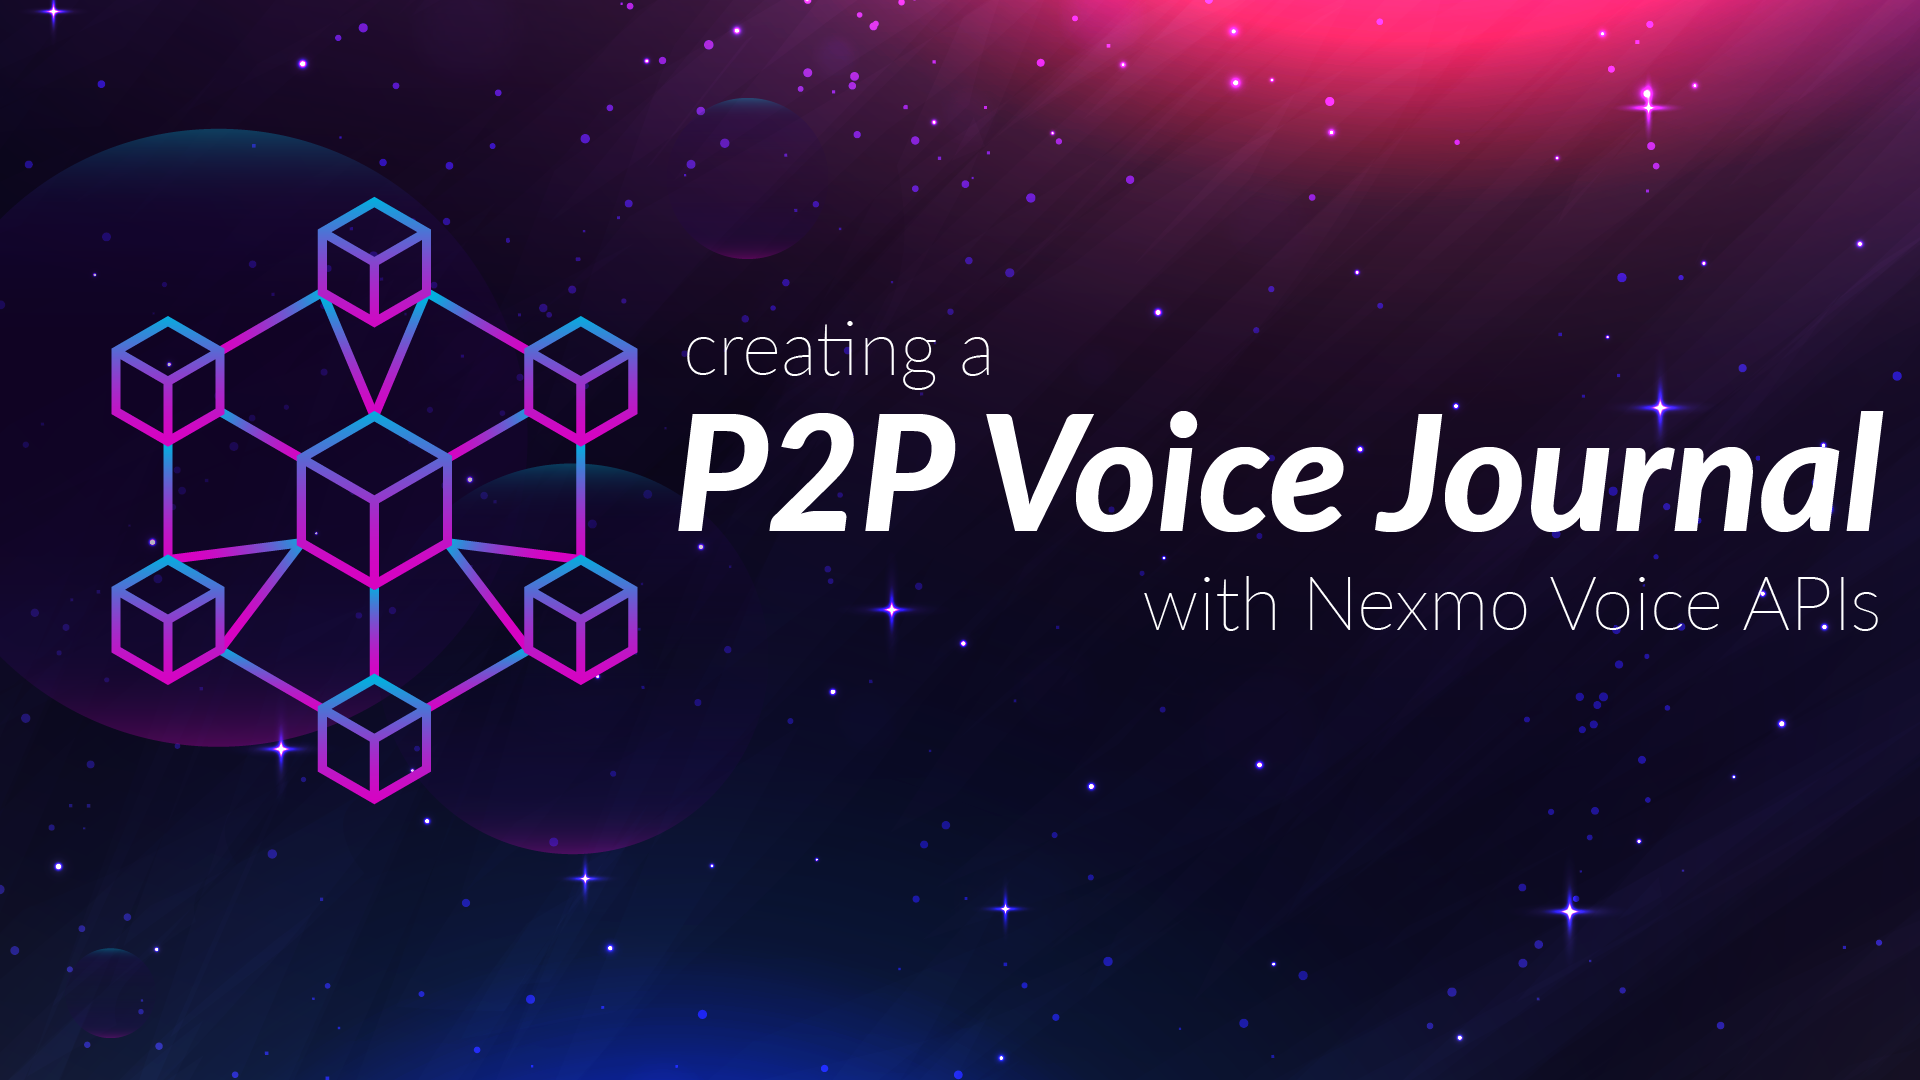 Creating a Voice Journal for the Next Web